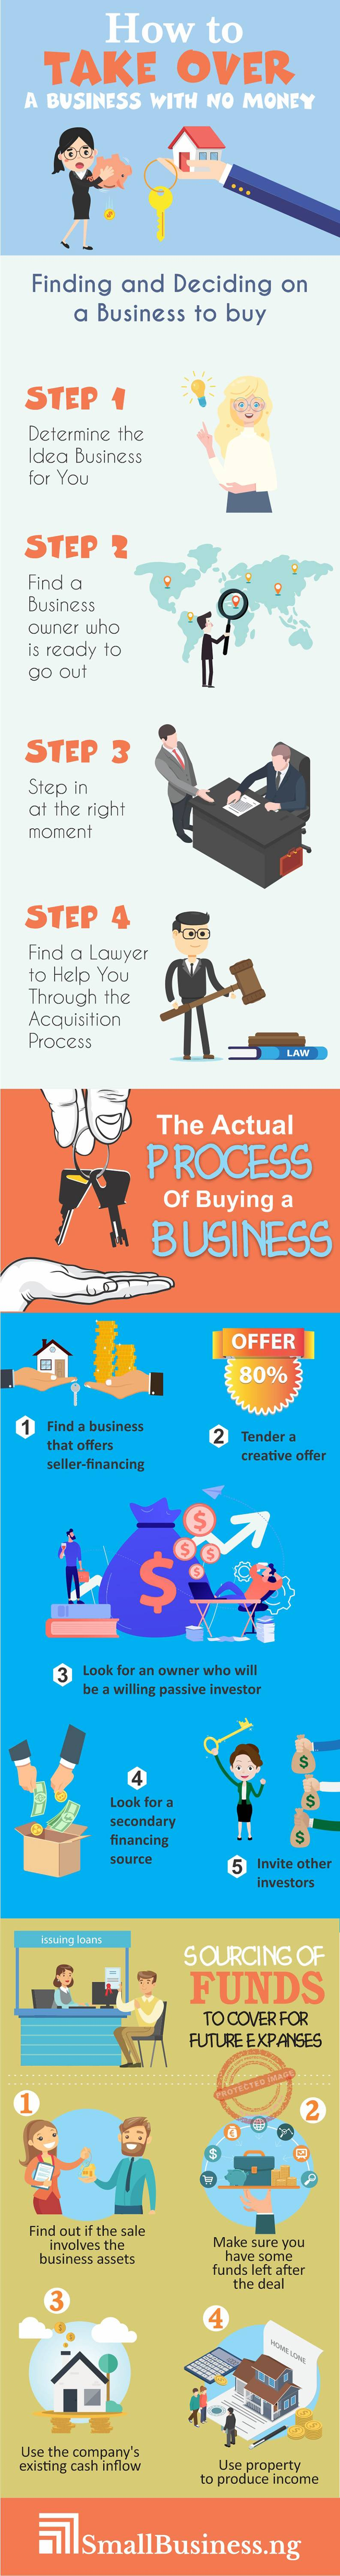 How to Take Over a Business With No Money Infographic